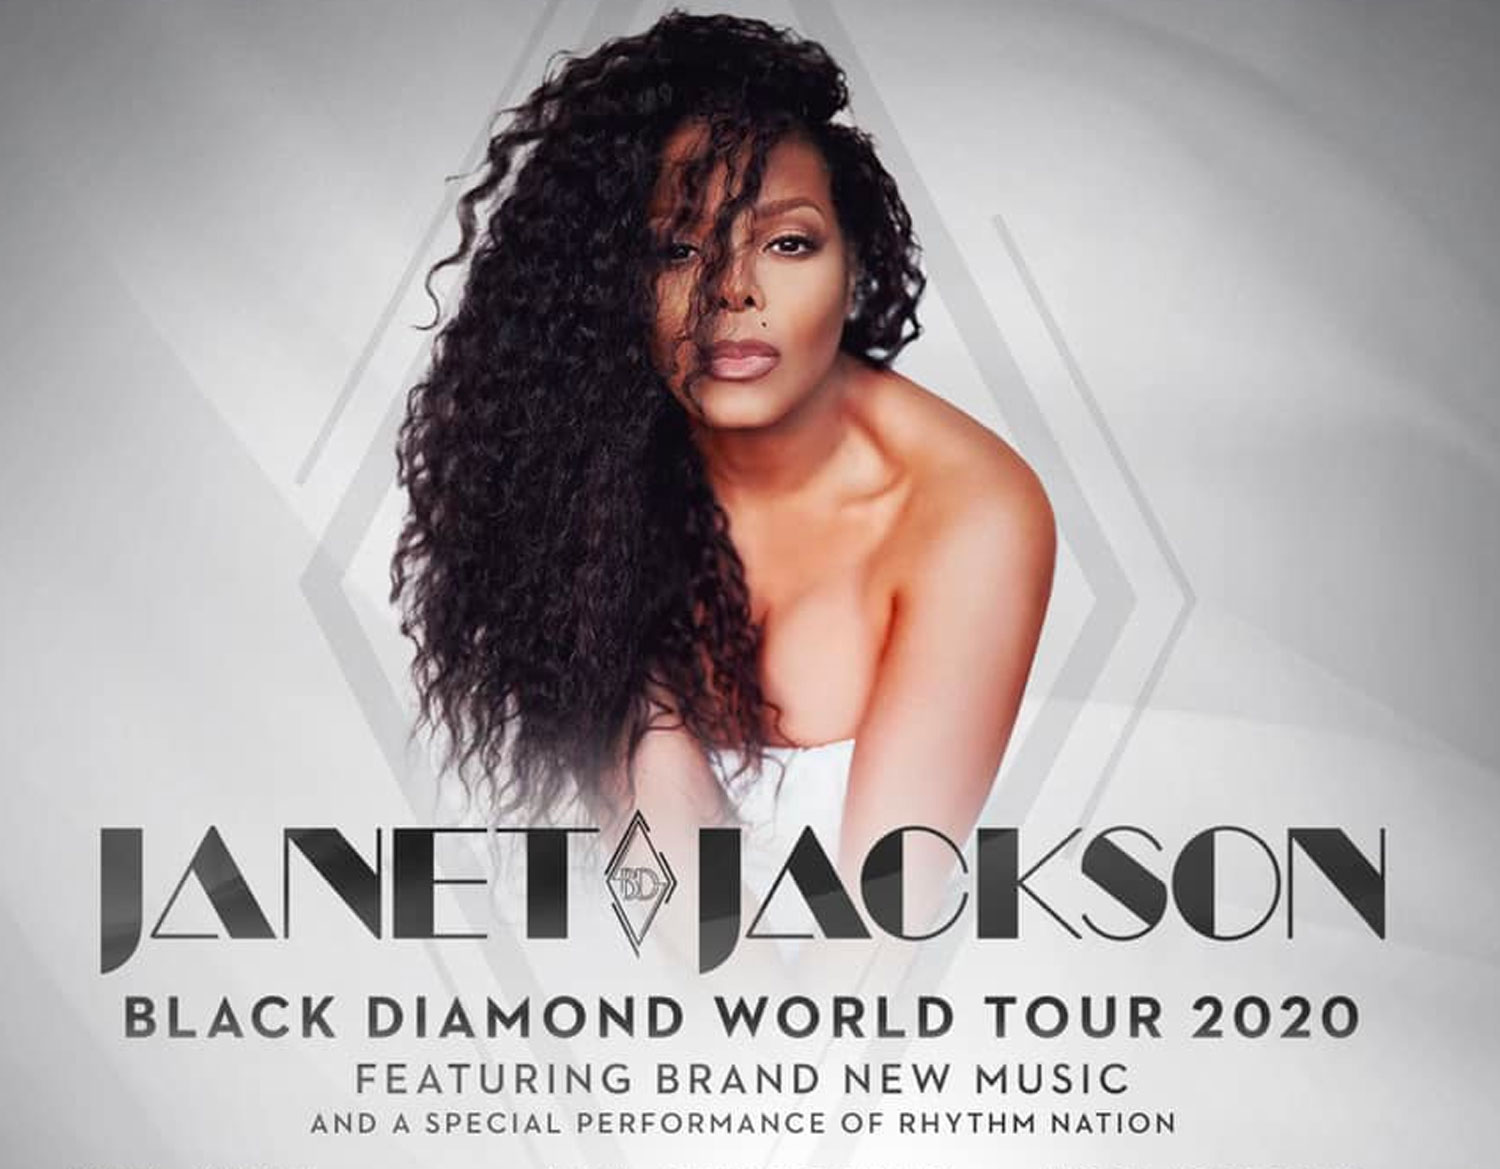 Janet Jackson Black Diamond World Tour